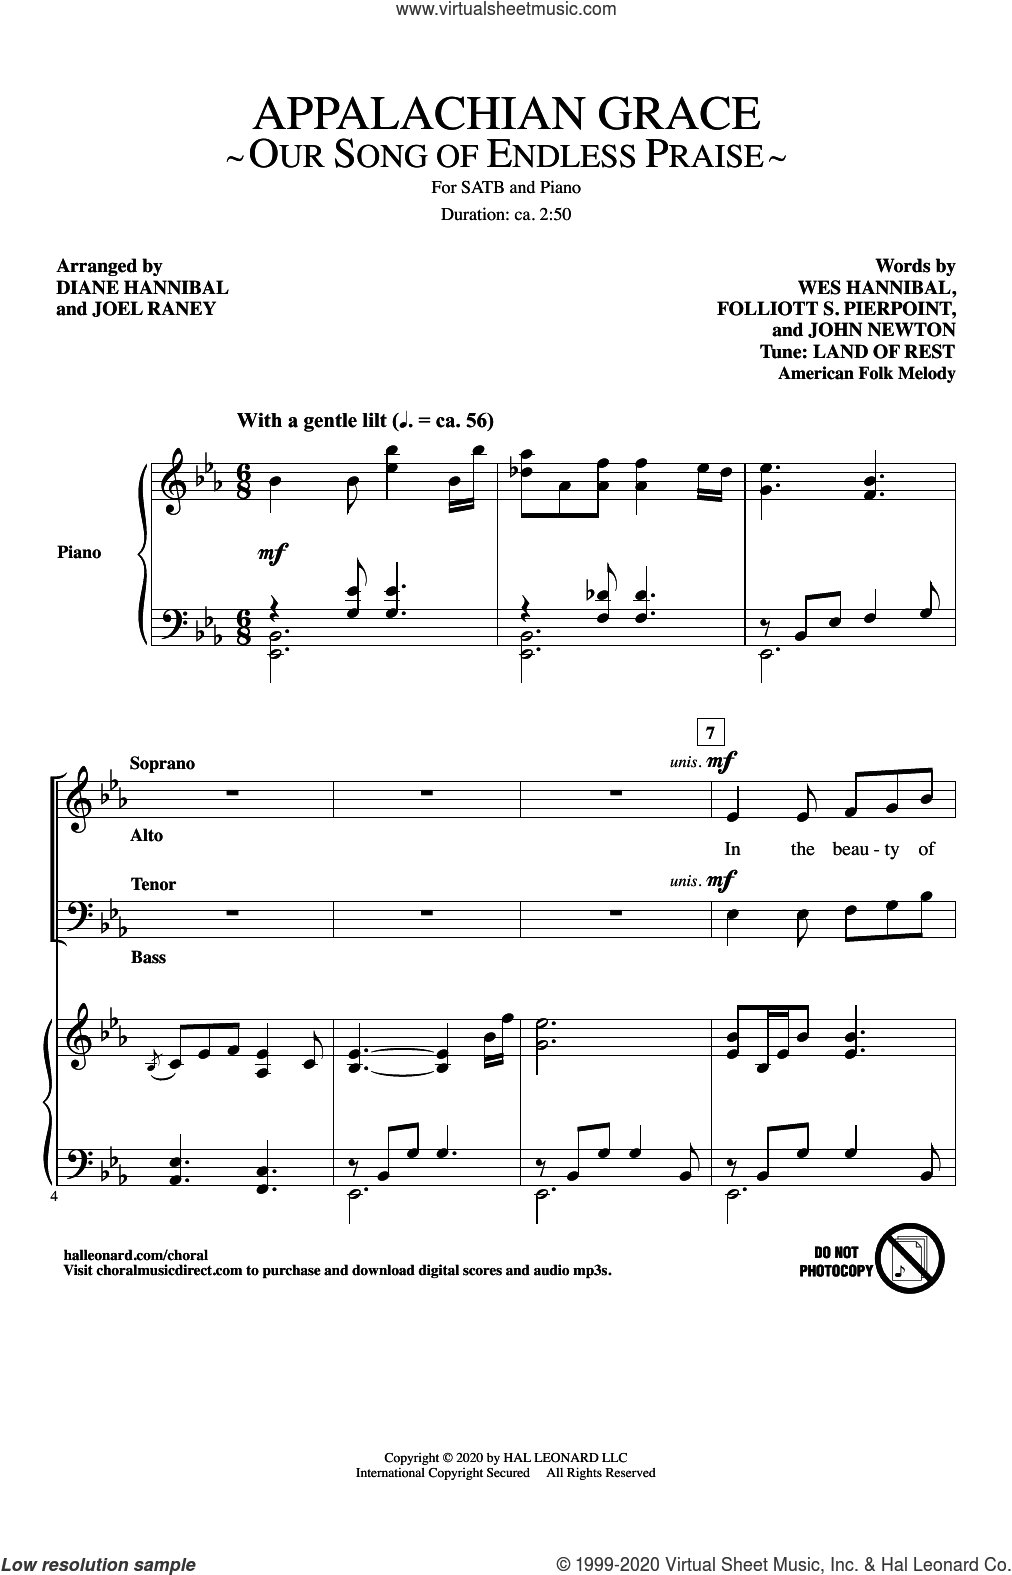 Appalachian Grace (Our Song Of Endless Praise) (arr. Diane Hannibal and Joel Raney) sheet music for choir (SATB: soprano, alto, tenor, bass) by John Newton, Diane Hannibal, Joel Raney, Folliott S. Pierpoint, Wes Hannibal and Wes Hannibal, Folliott S. Pierpoint and John Newton, intermediate skill level